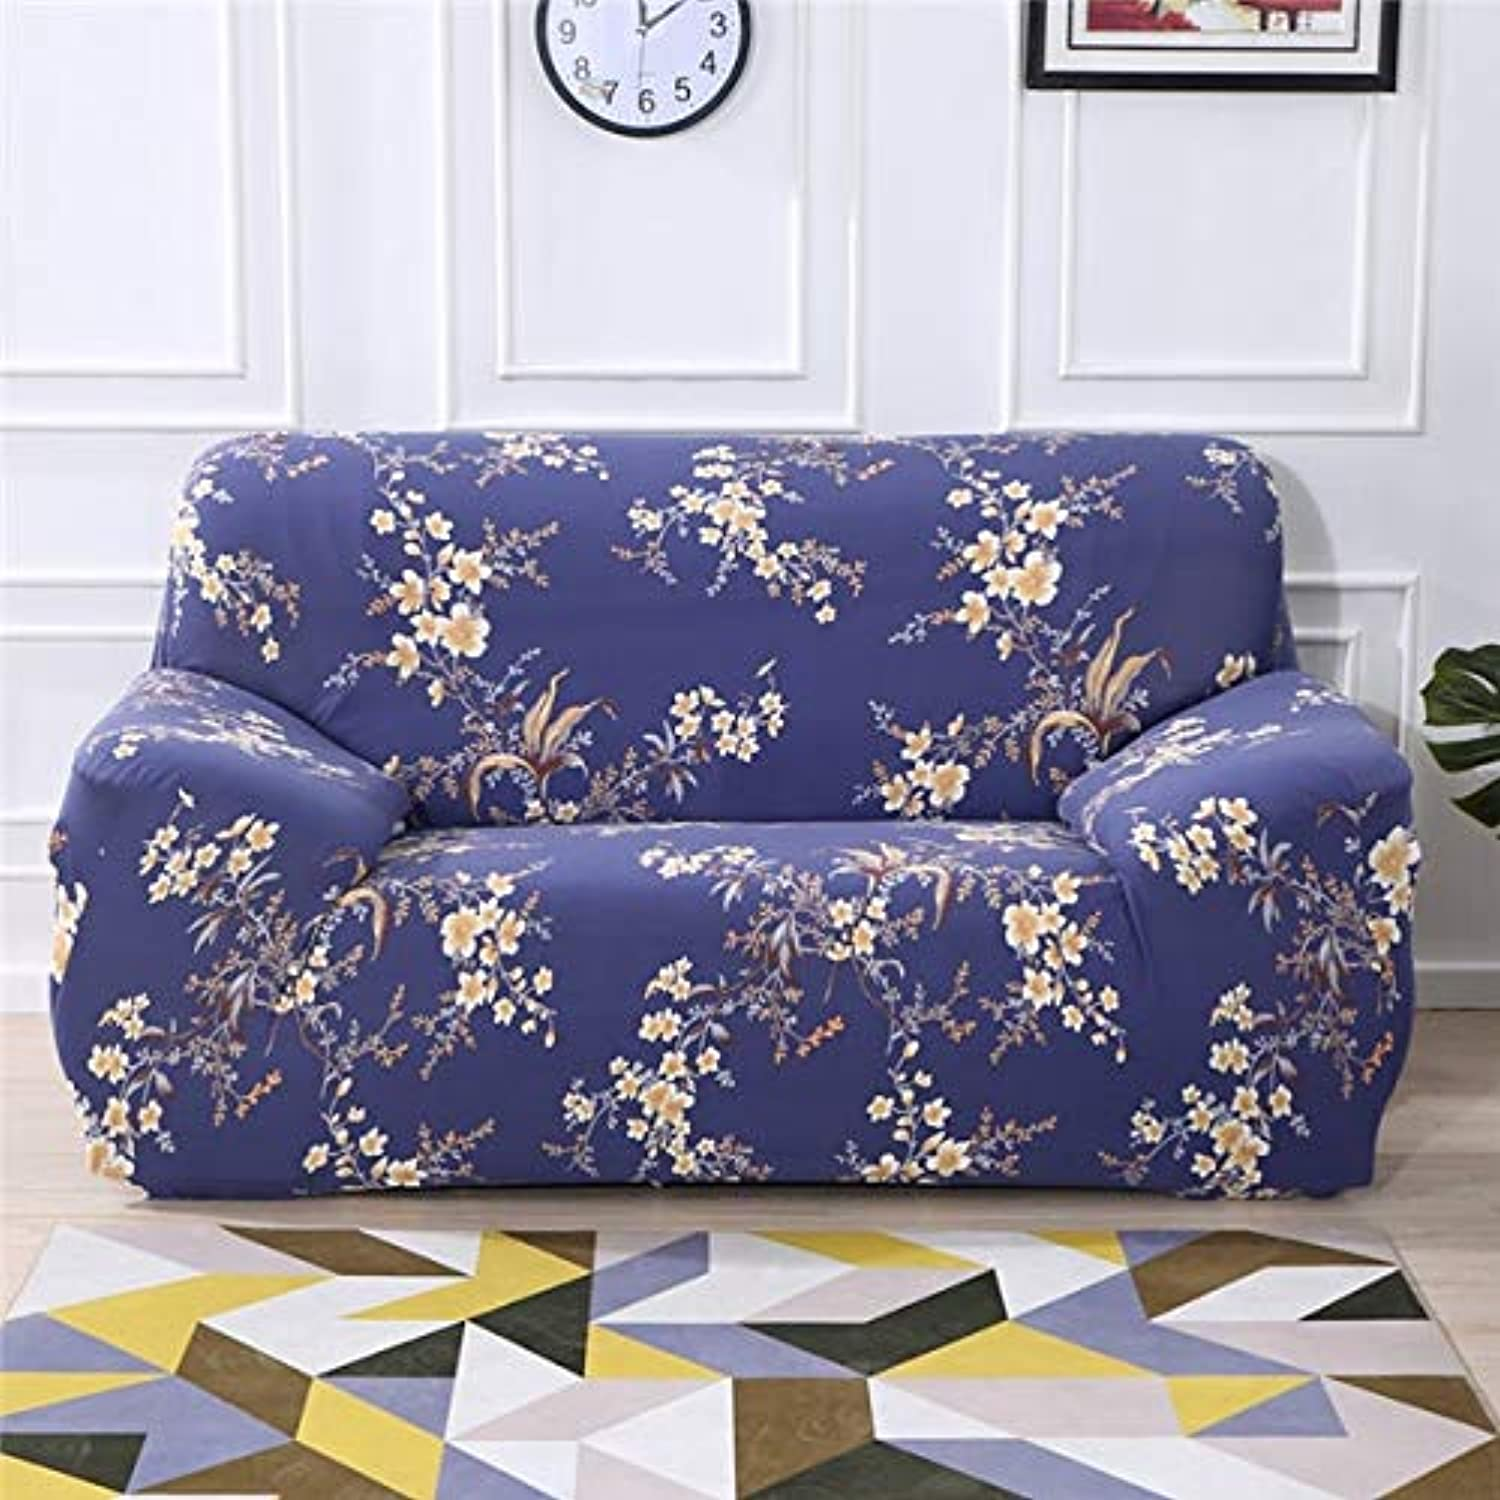 Fabulous Baroque Pattern Elastic Spandex Sofa Covers Sectional Sofa Beutiful Home Inspiration Xortanetmahrainfo